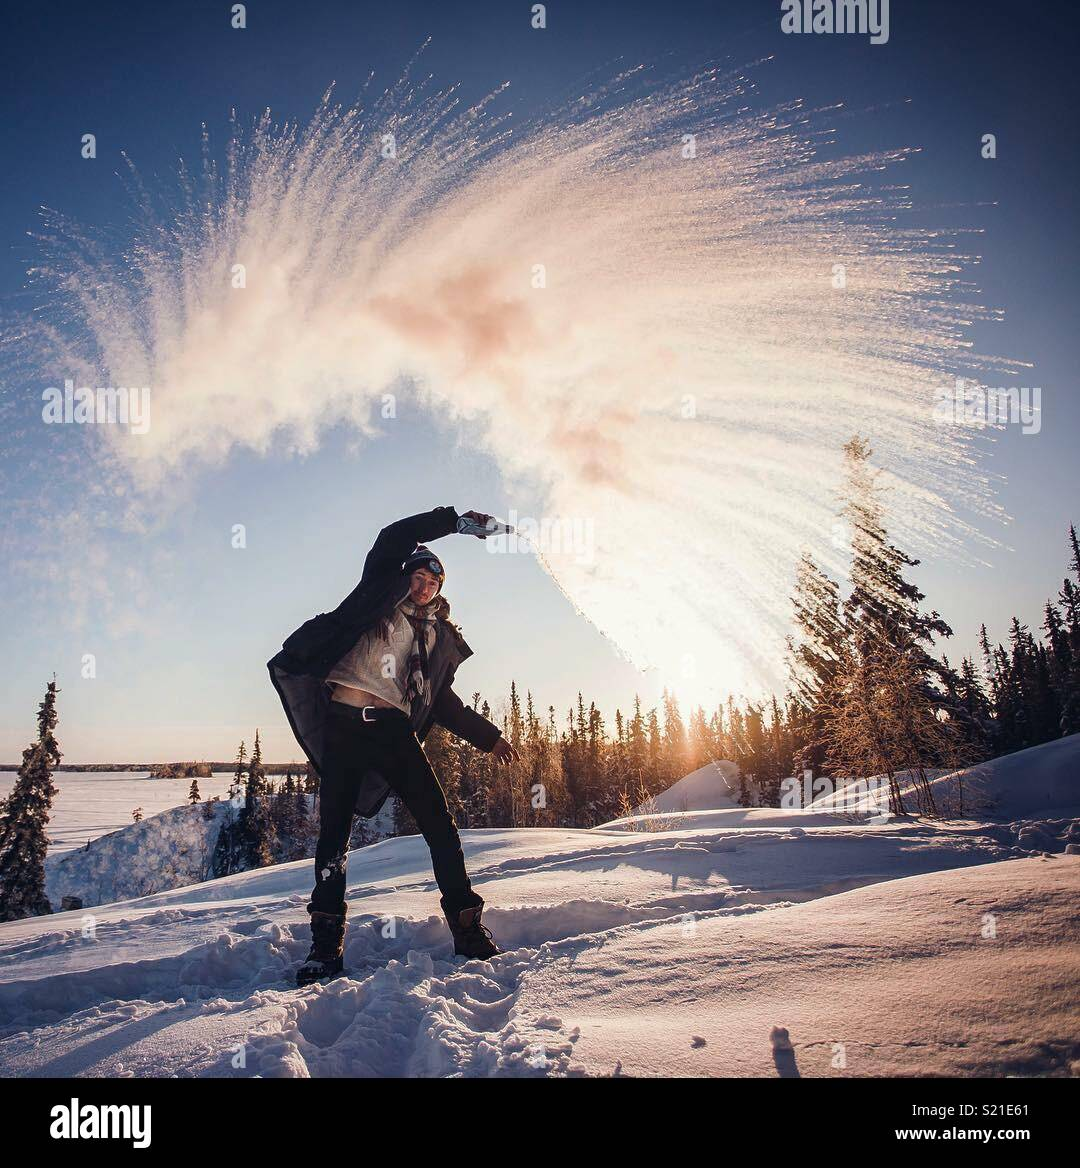 Throwing water in -40C which instantly freezes.  Northwest Territories, Canada - Stock Image